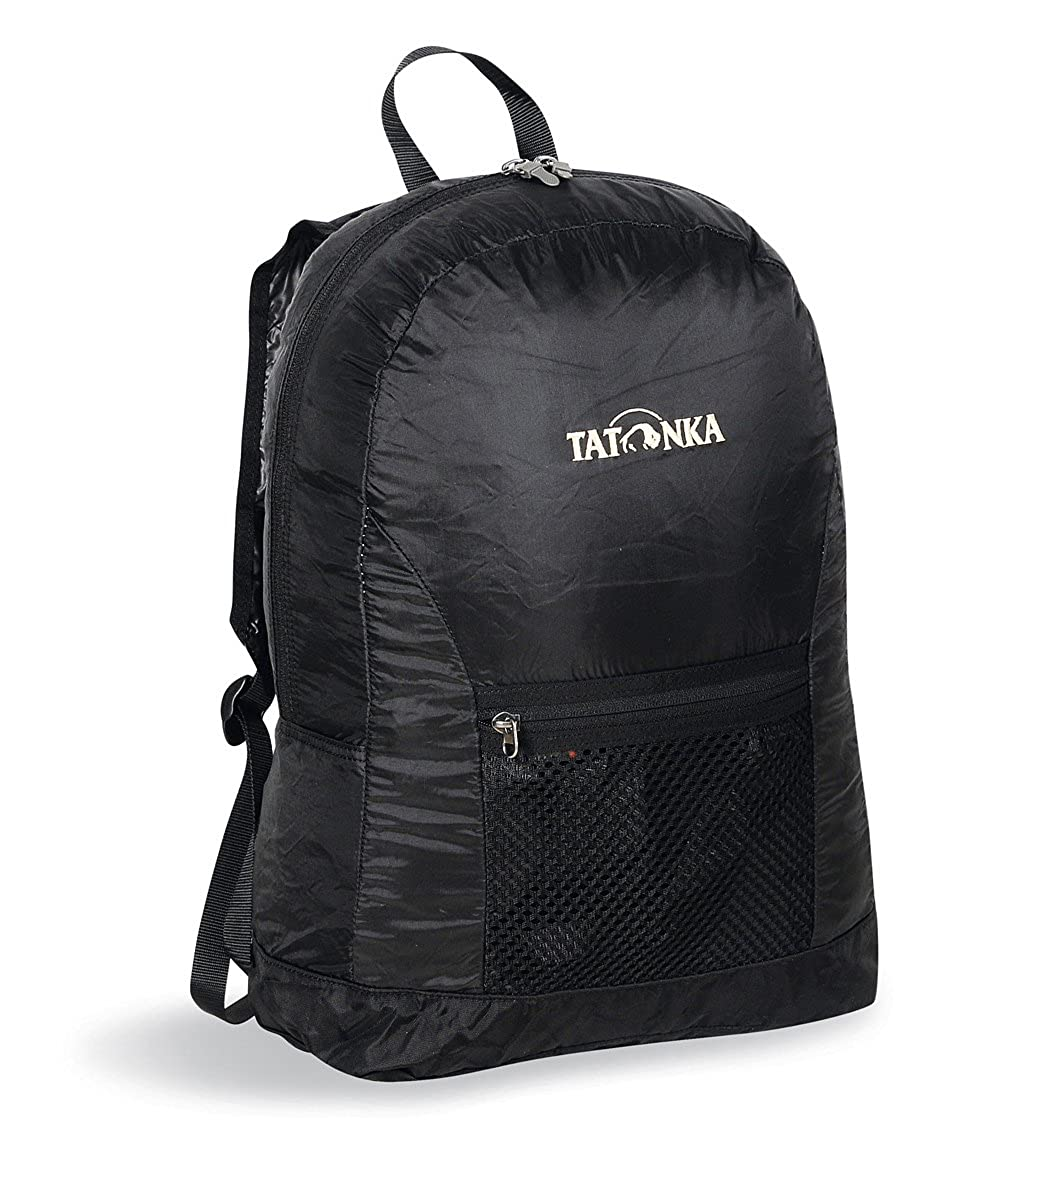 Tatonka - Superlight - Sac - Noir 2216